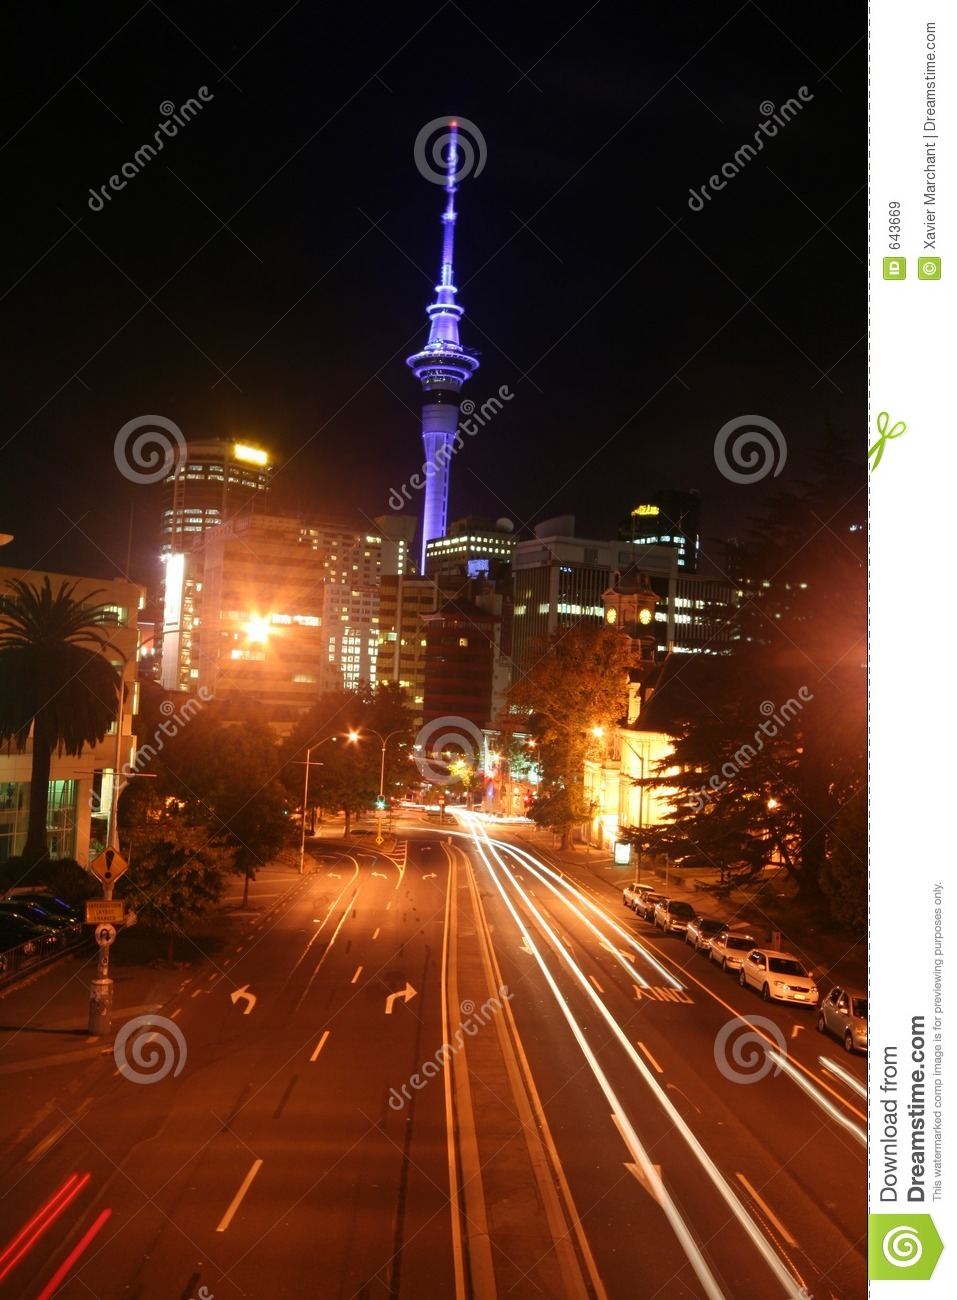 Date alive in Auckland